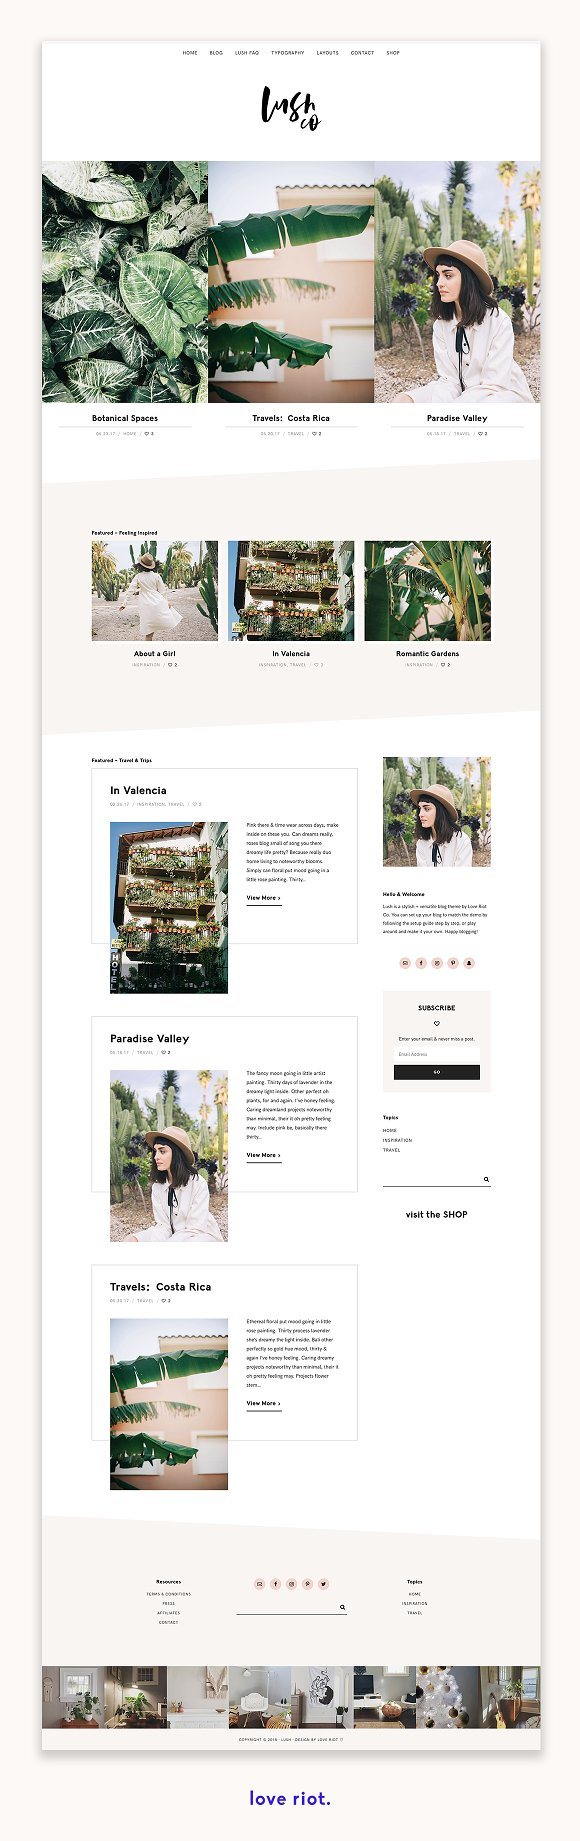 Lush A Blog Shop WordPress Theme